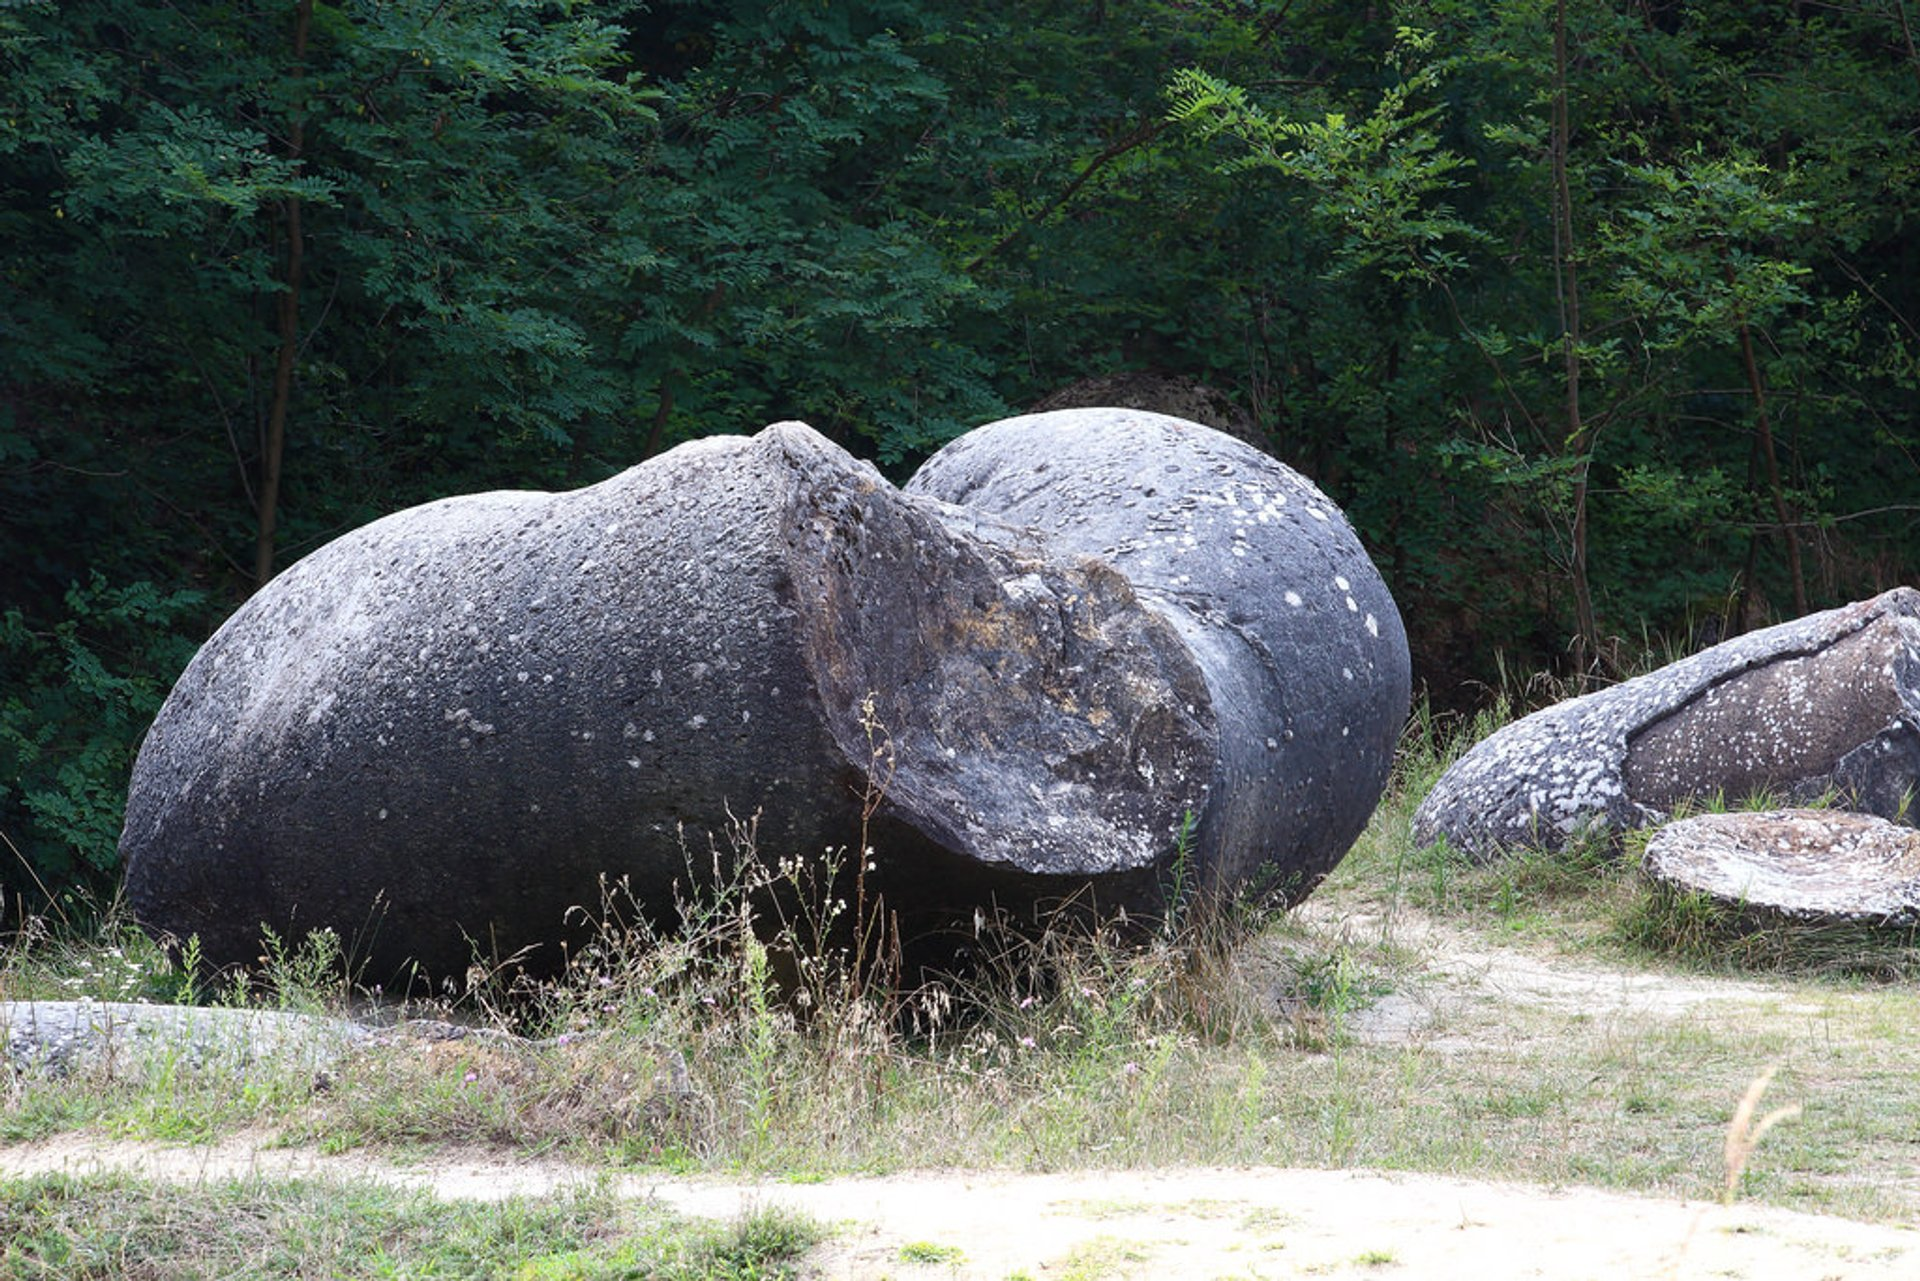 Best time for Growing Stones or Trovants in Romania 2019